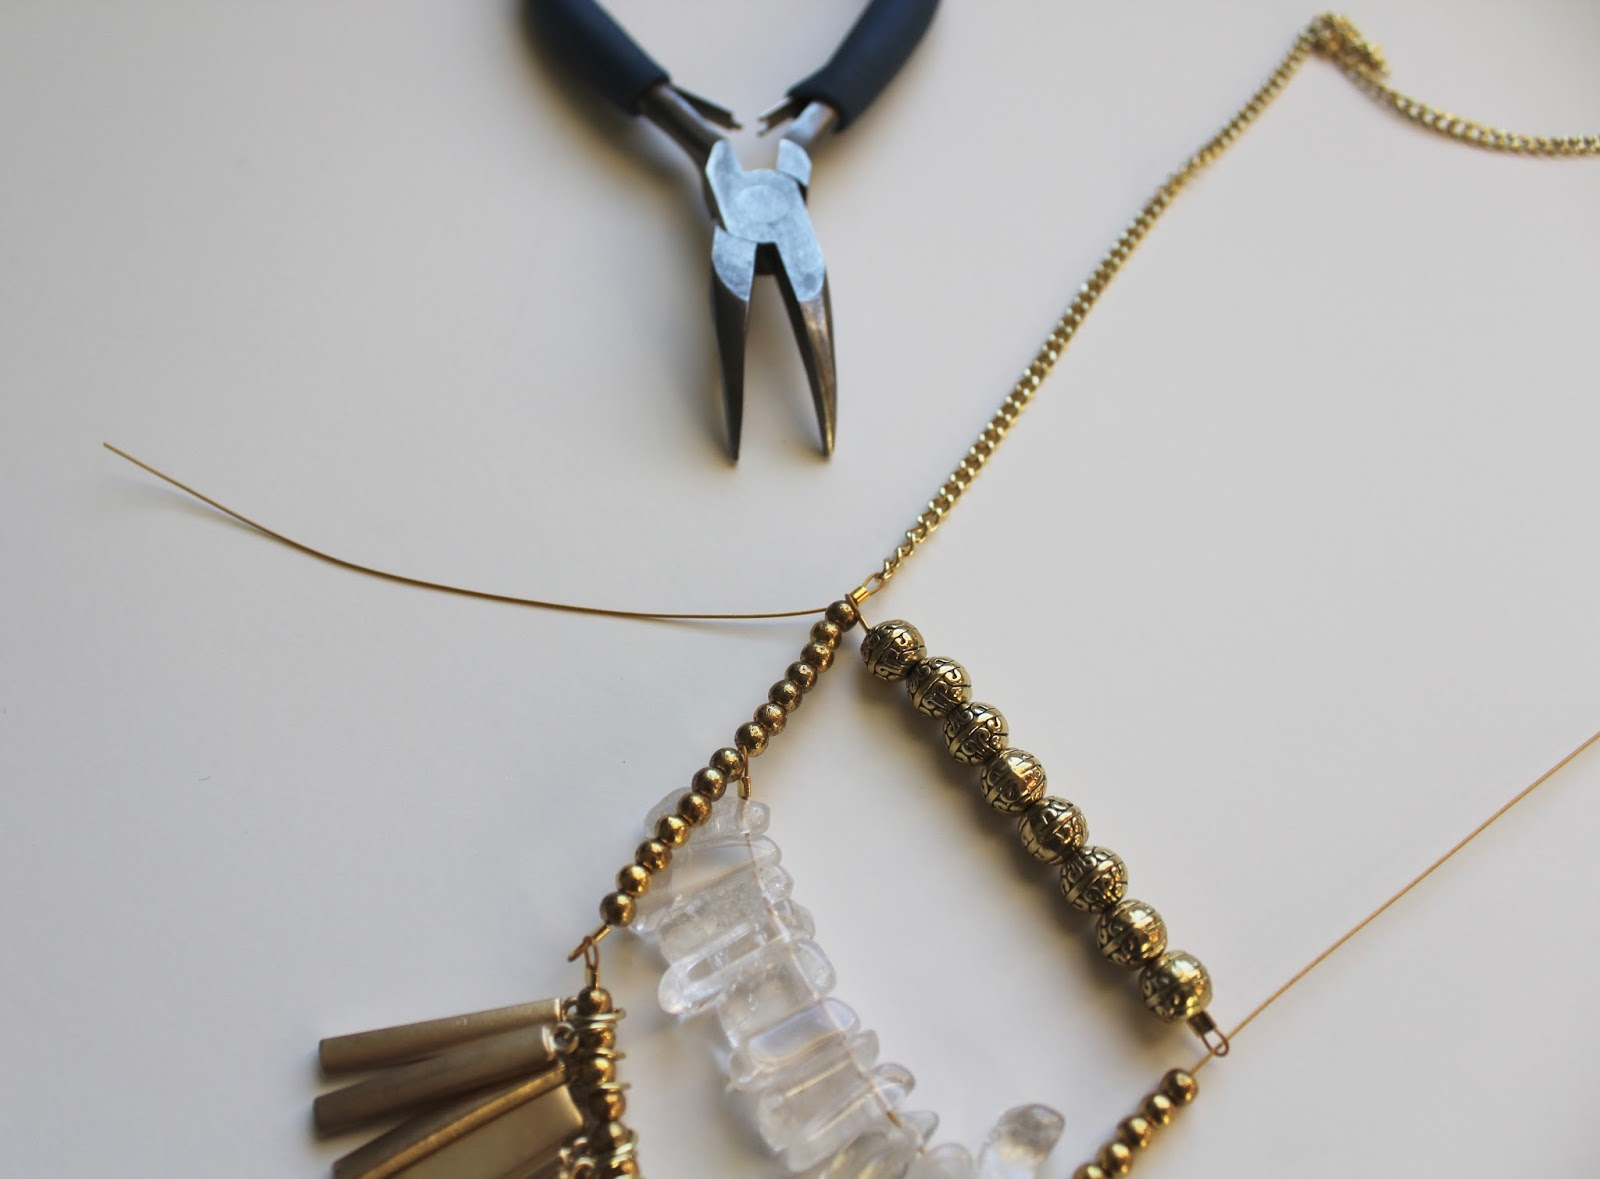 Gold Pendant Chain Necklace DIY - My Girlish Whims